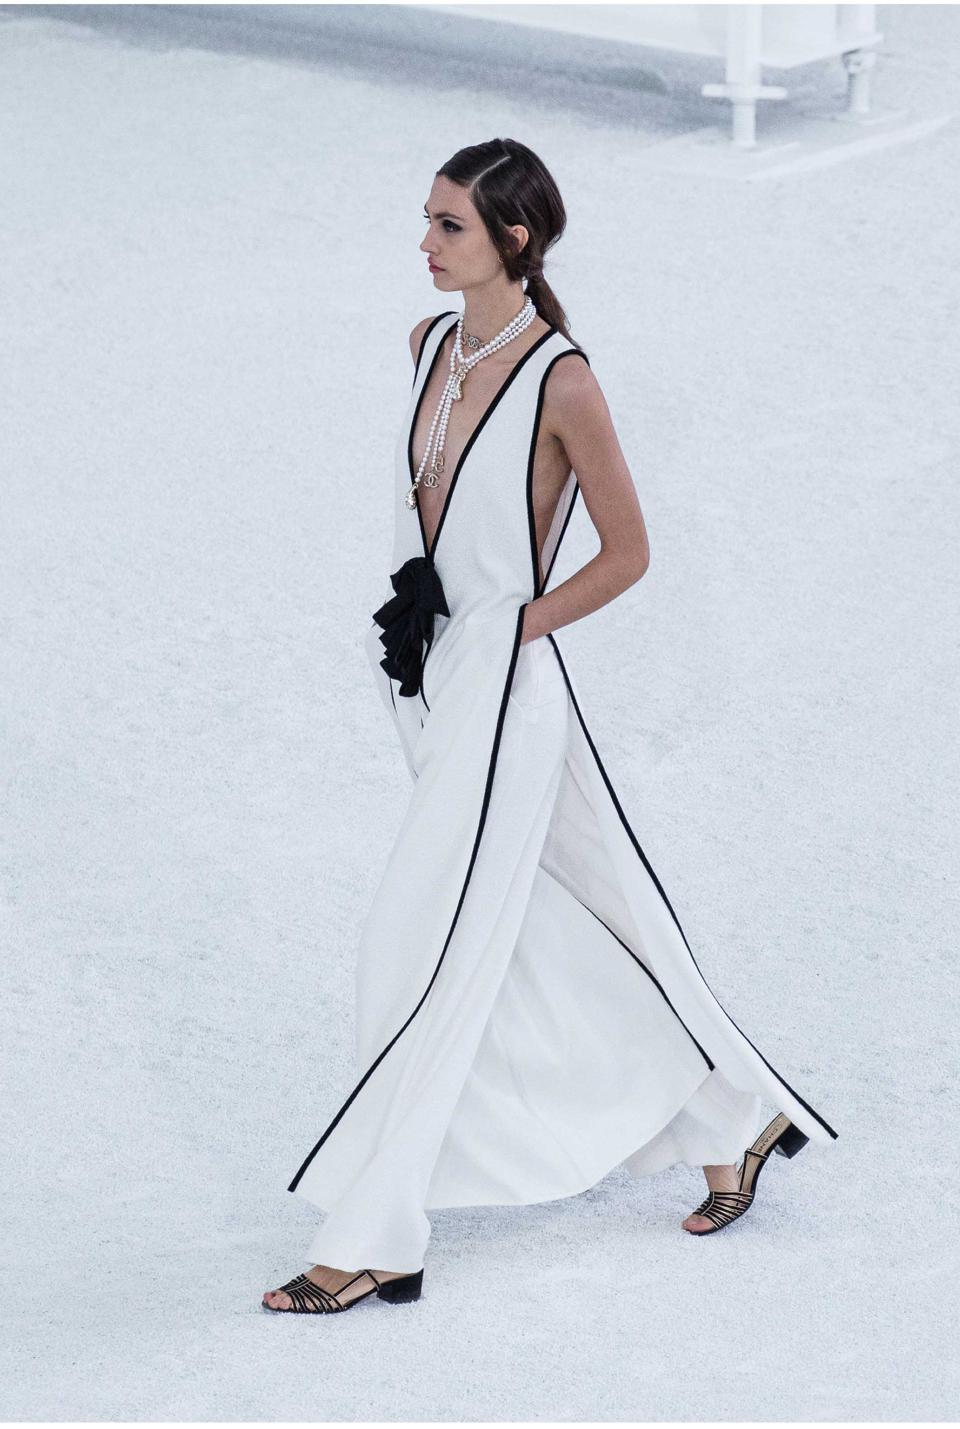 CHANEL SS 2021 RTW Collection. Elegant and so feminime. Look 63